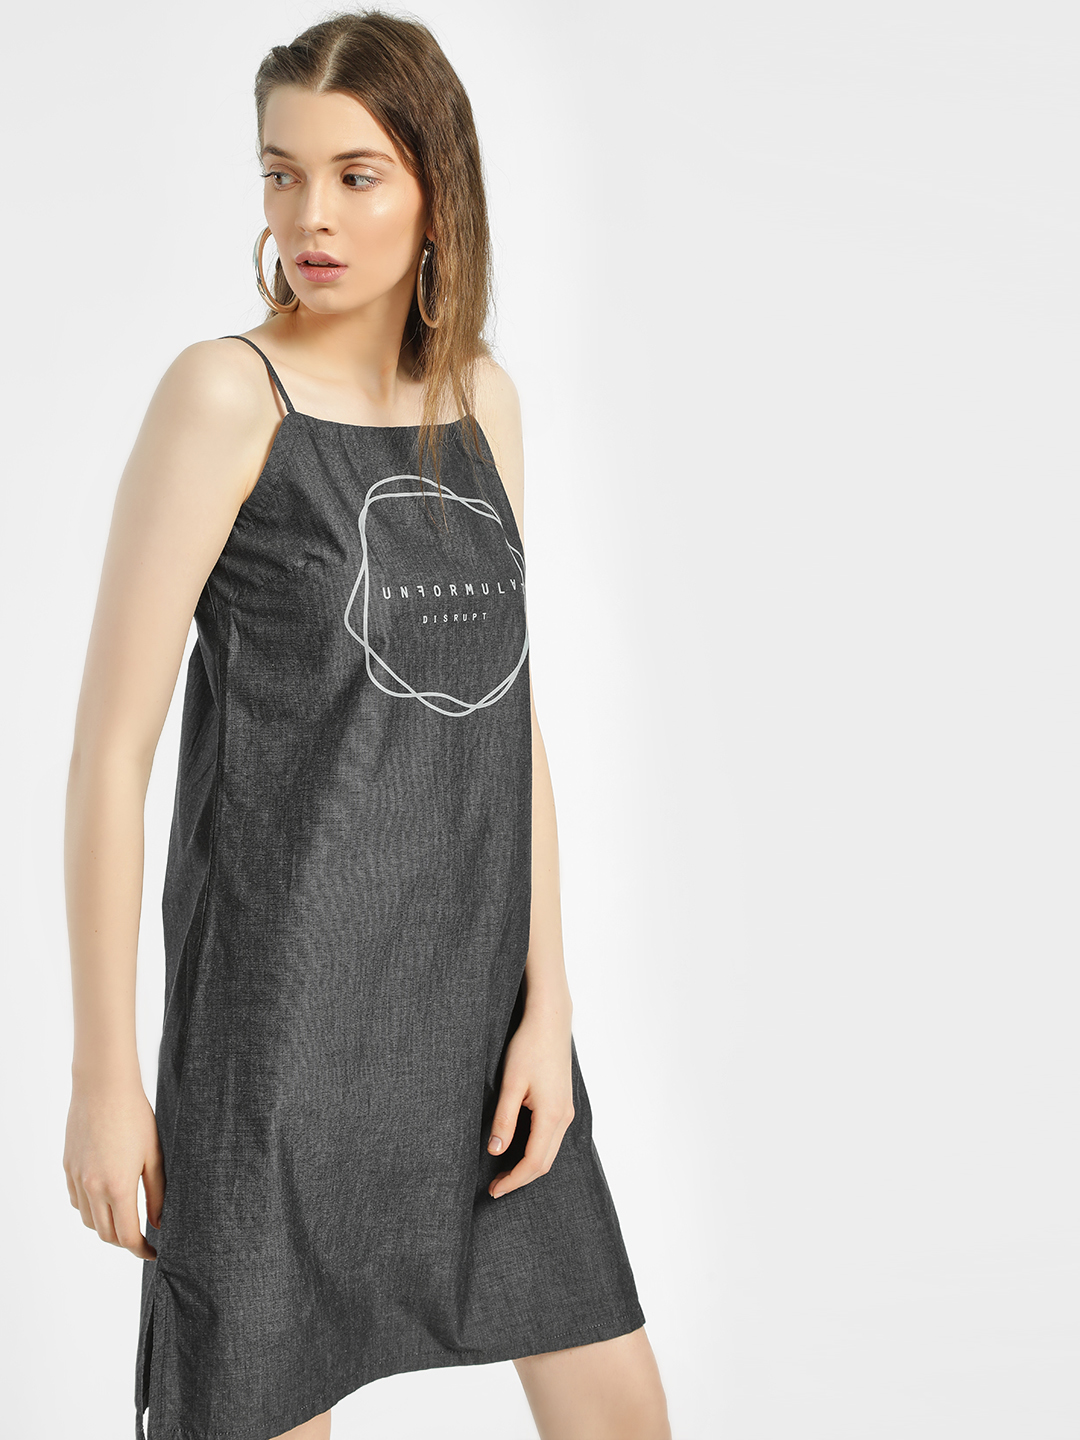 Disrupt Grey Unformulated Text Print Shift Dress 1